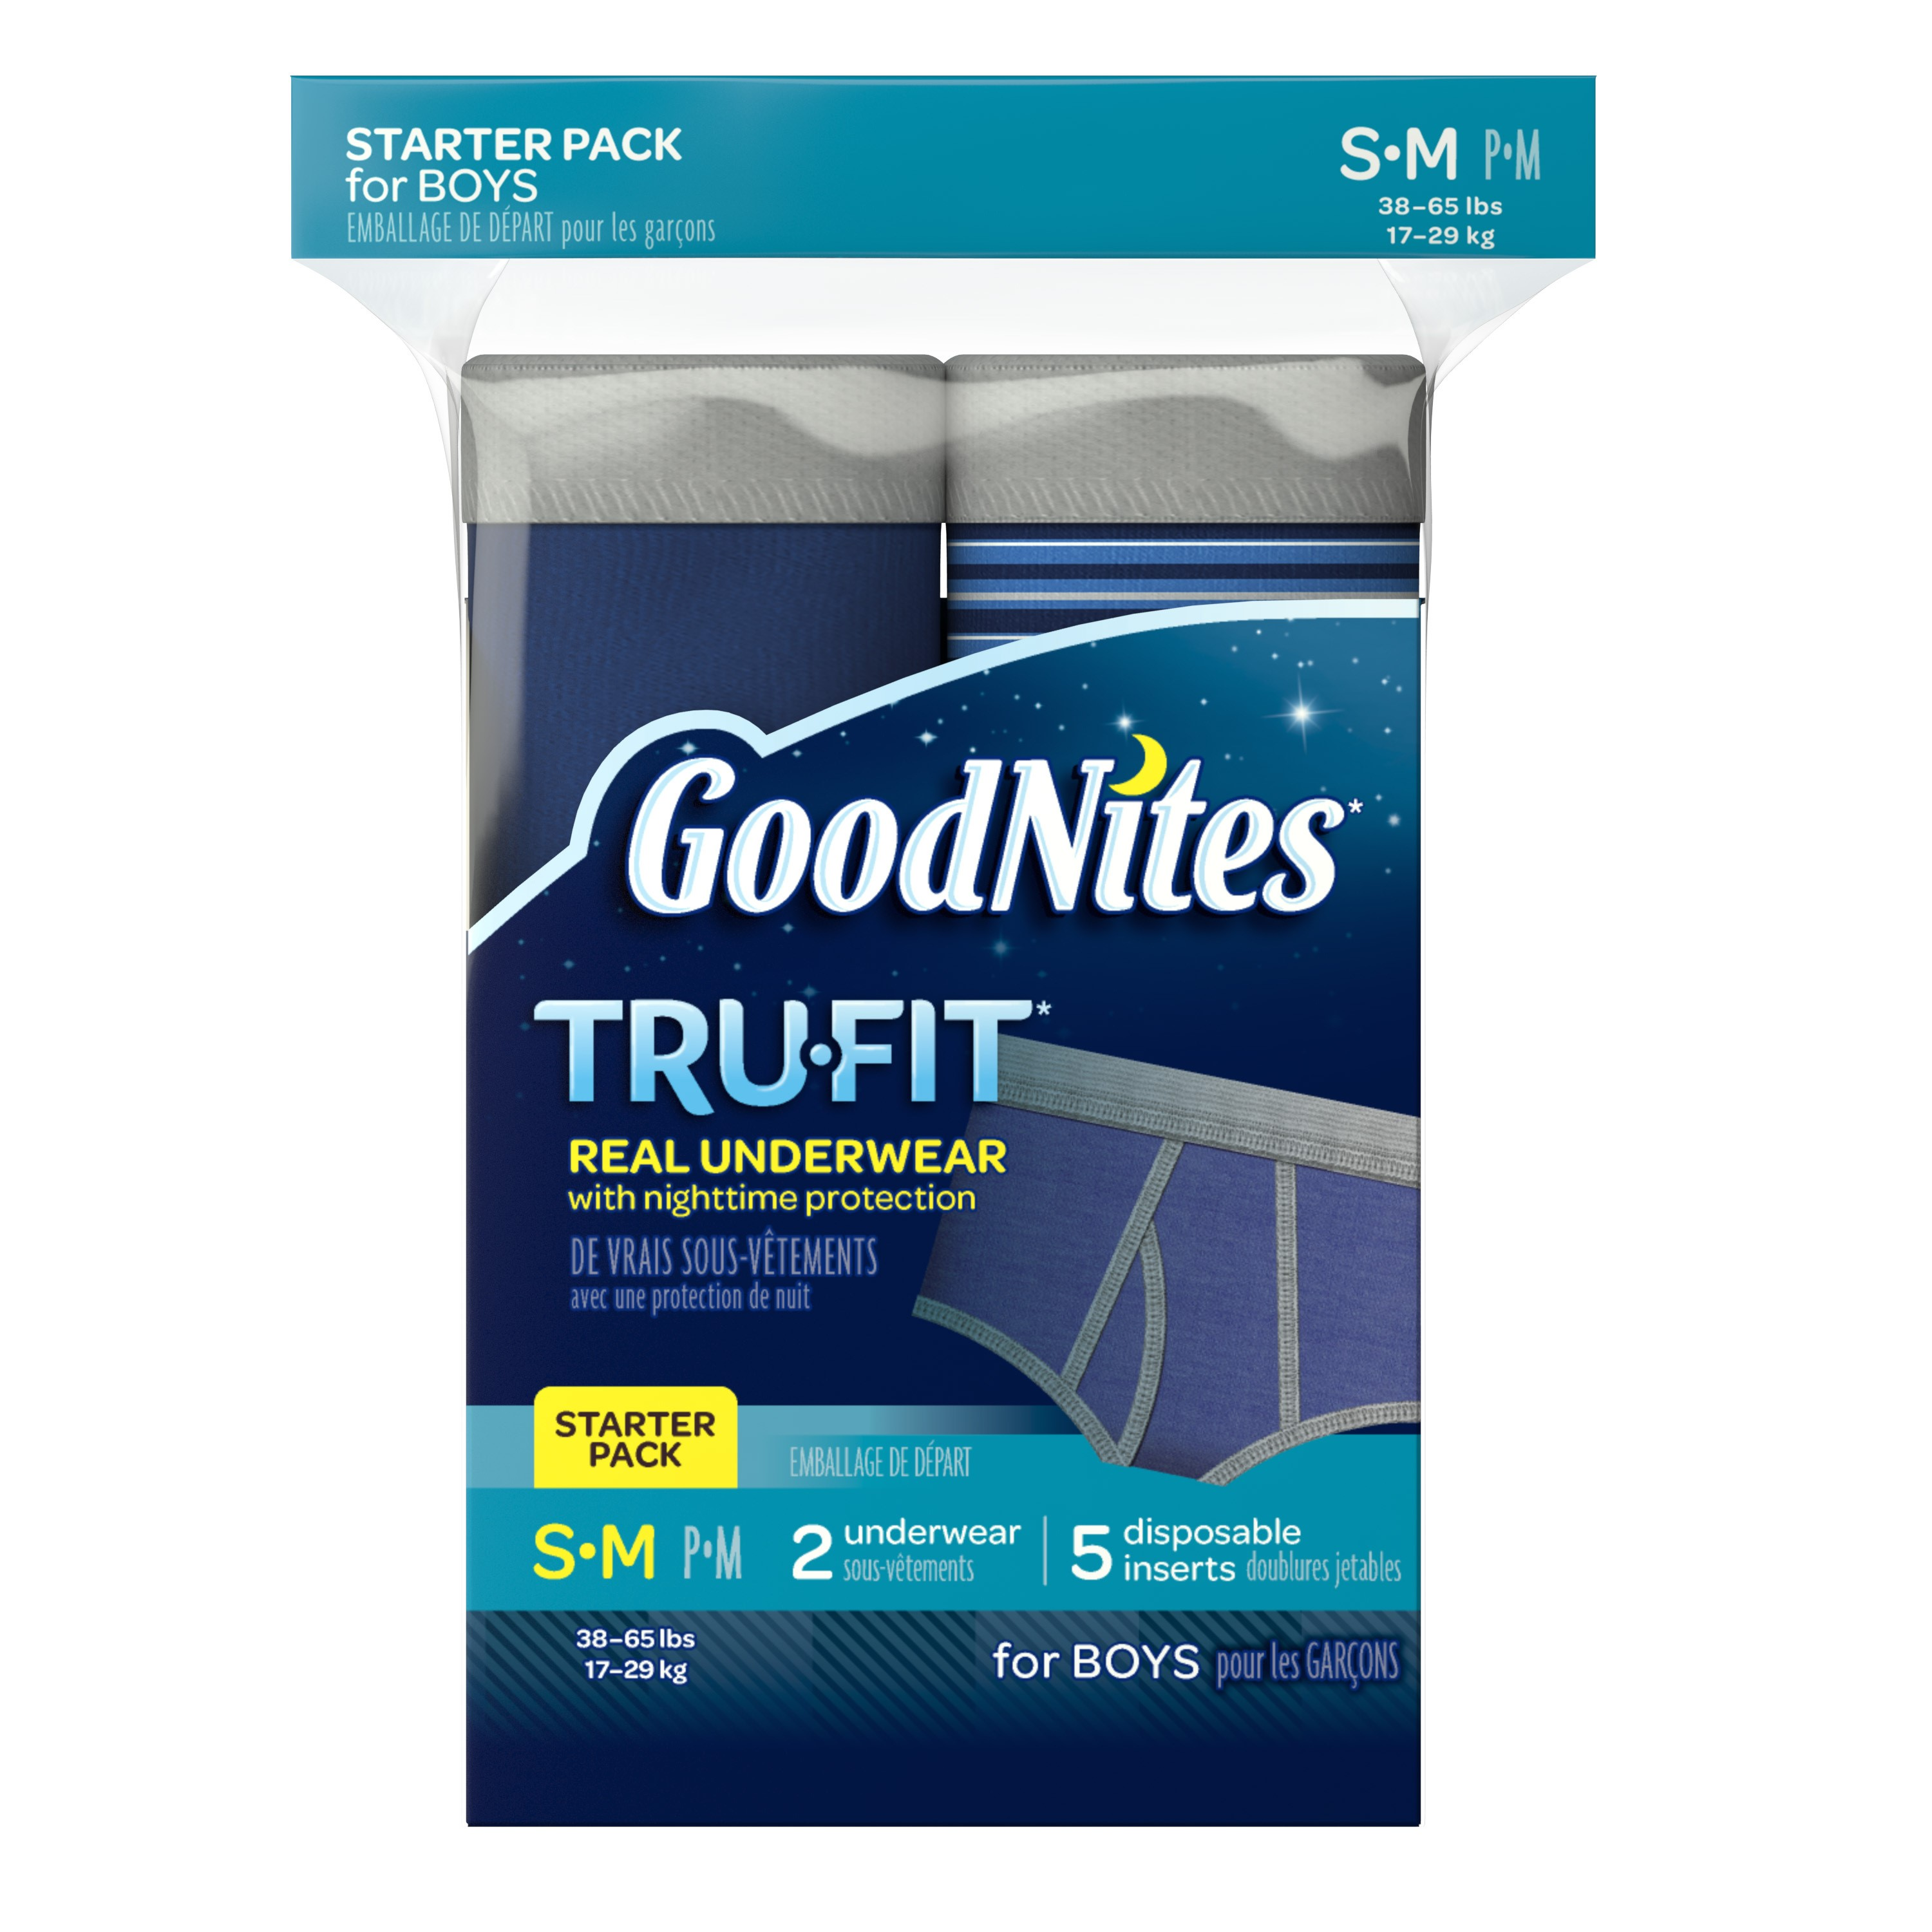 Goodnites Tru-Fit Bedwetting Underwear for Boys, Starter Pack, Size S/M, 2 Pants +5 Inserts